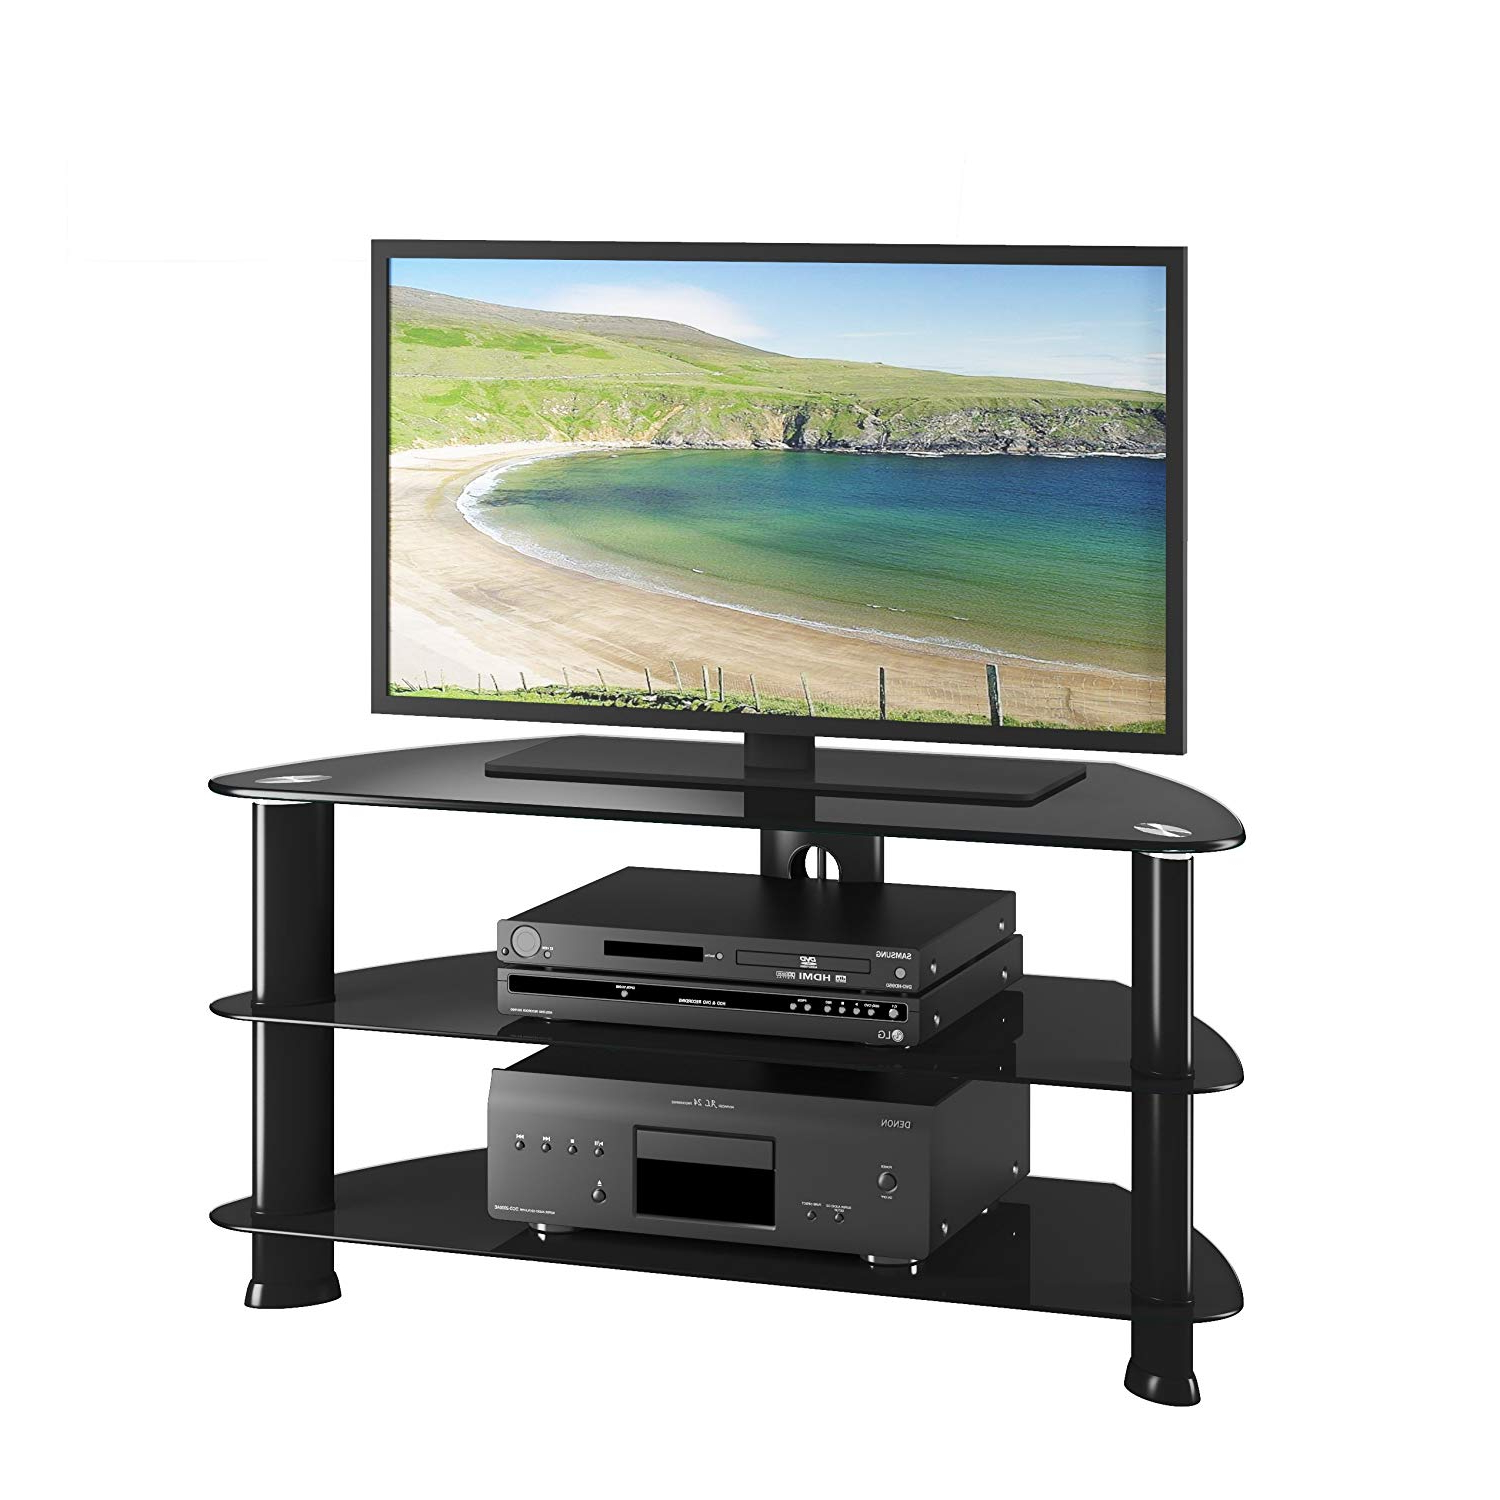 Universal 24 Inch Tv Stands Throughout Most Recently Released Amazon: Corliving Trl 401 T Laguna Satin Black Corner Tv Stand (View 12 of 20)